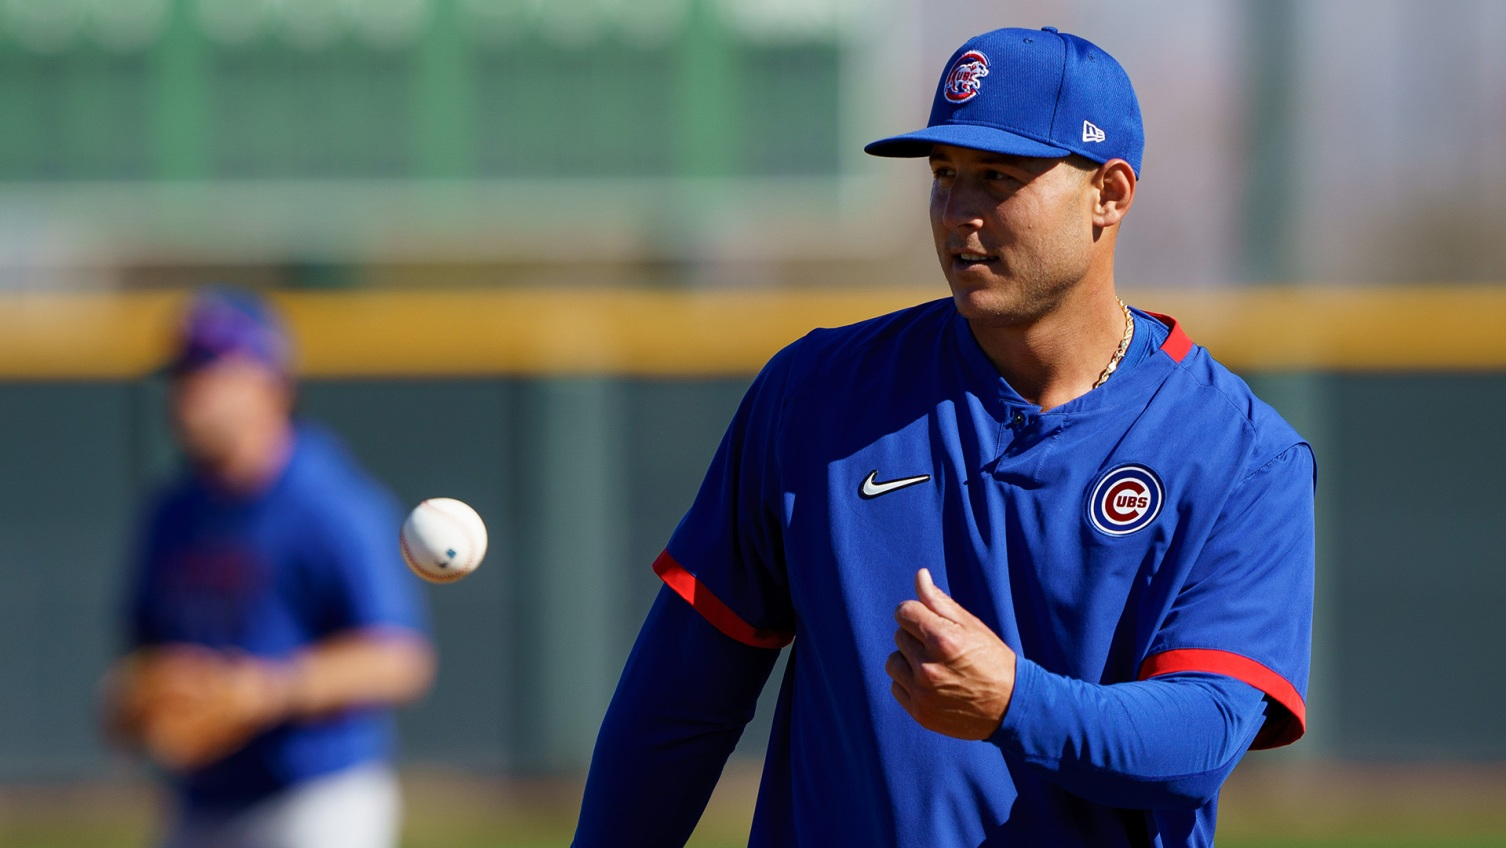 Cubs' Anthony Rizzo leaves game with lower back tightness